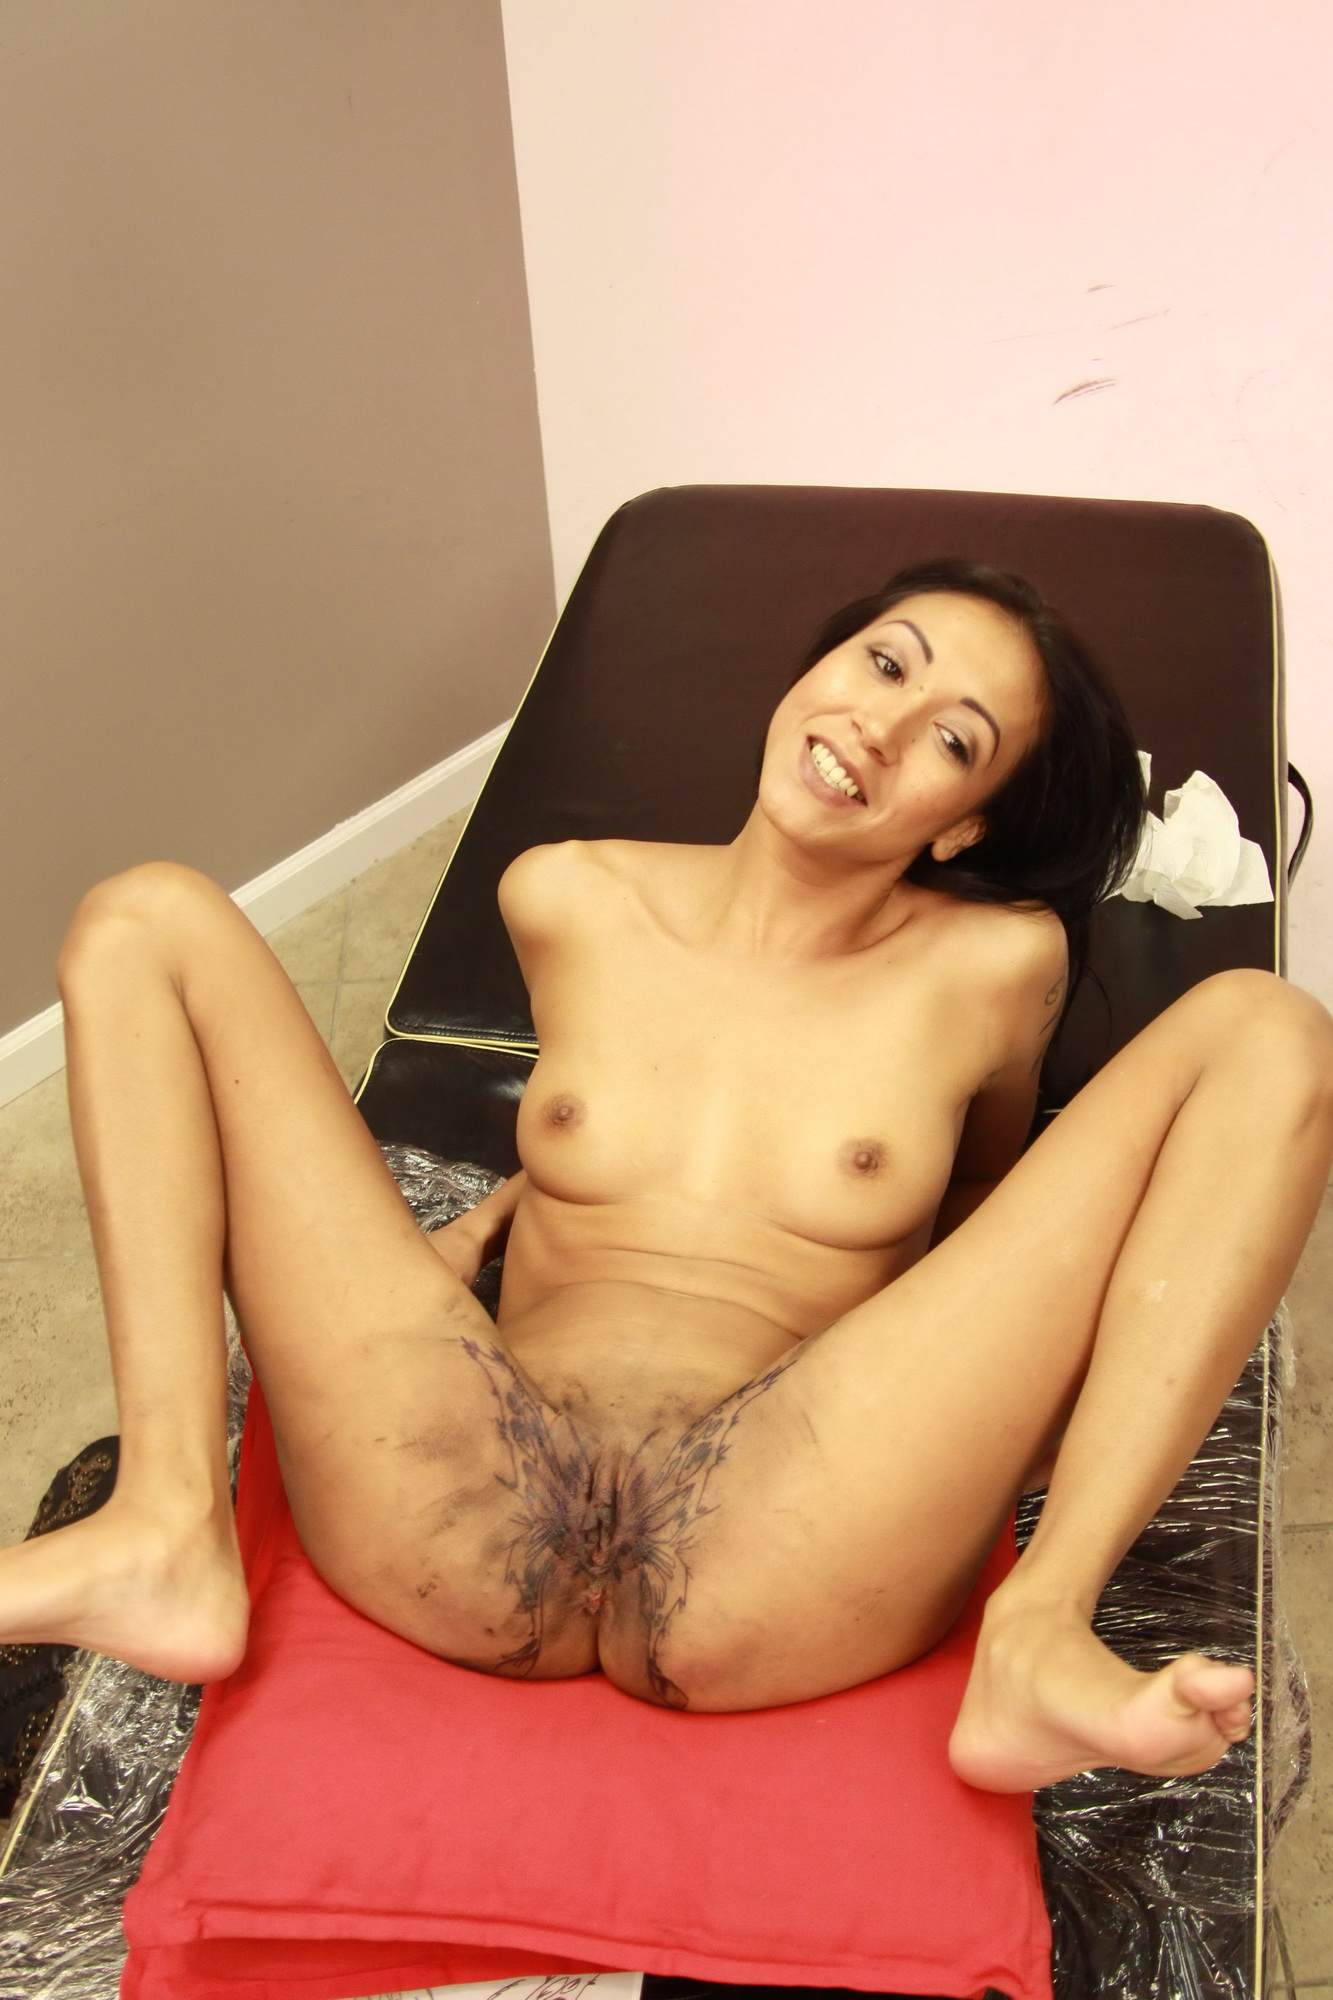 Cultured asian lady getting her reflexology and a creampie - 3 part 9